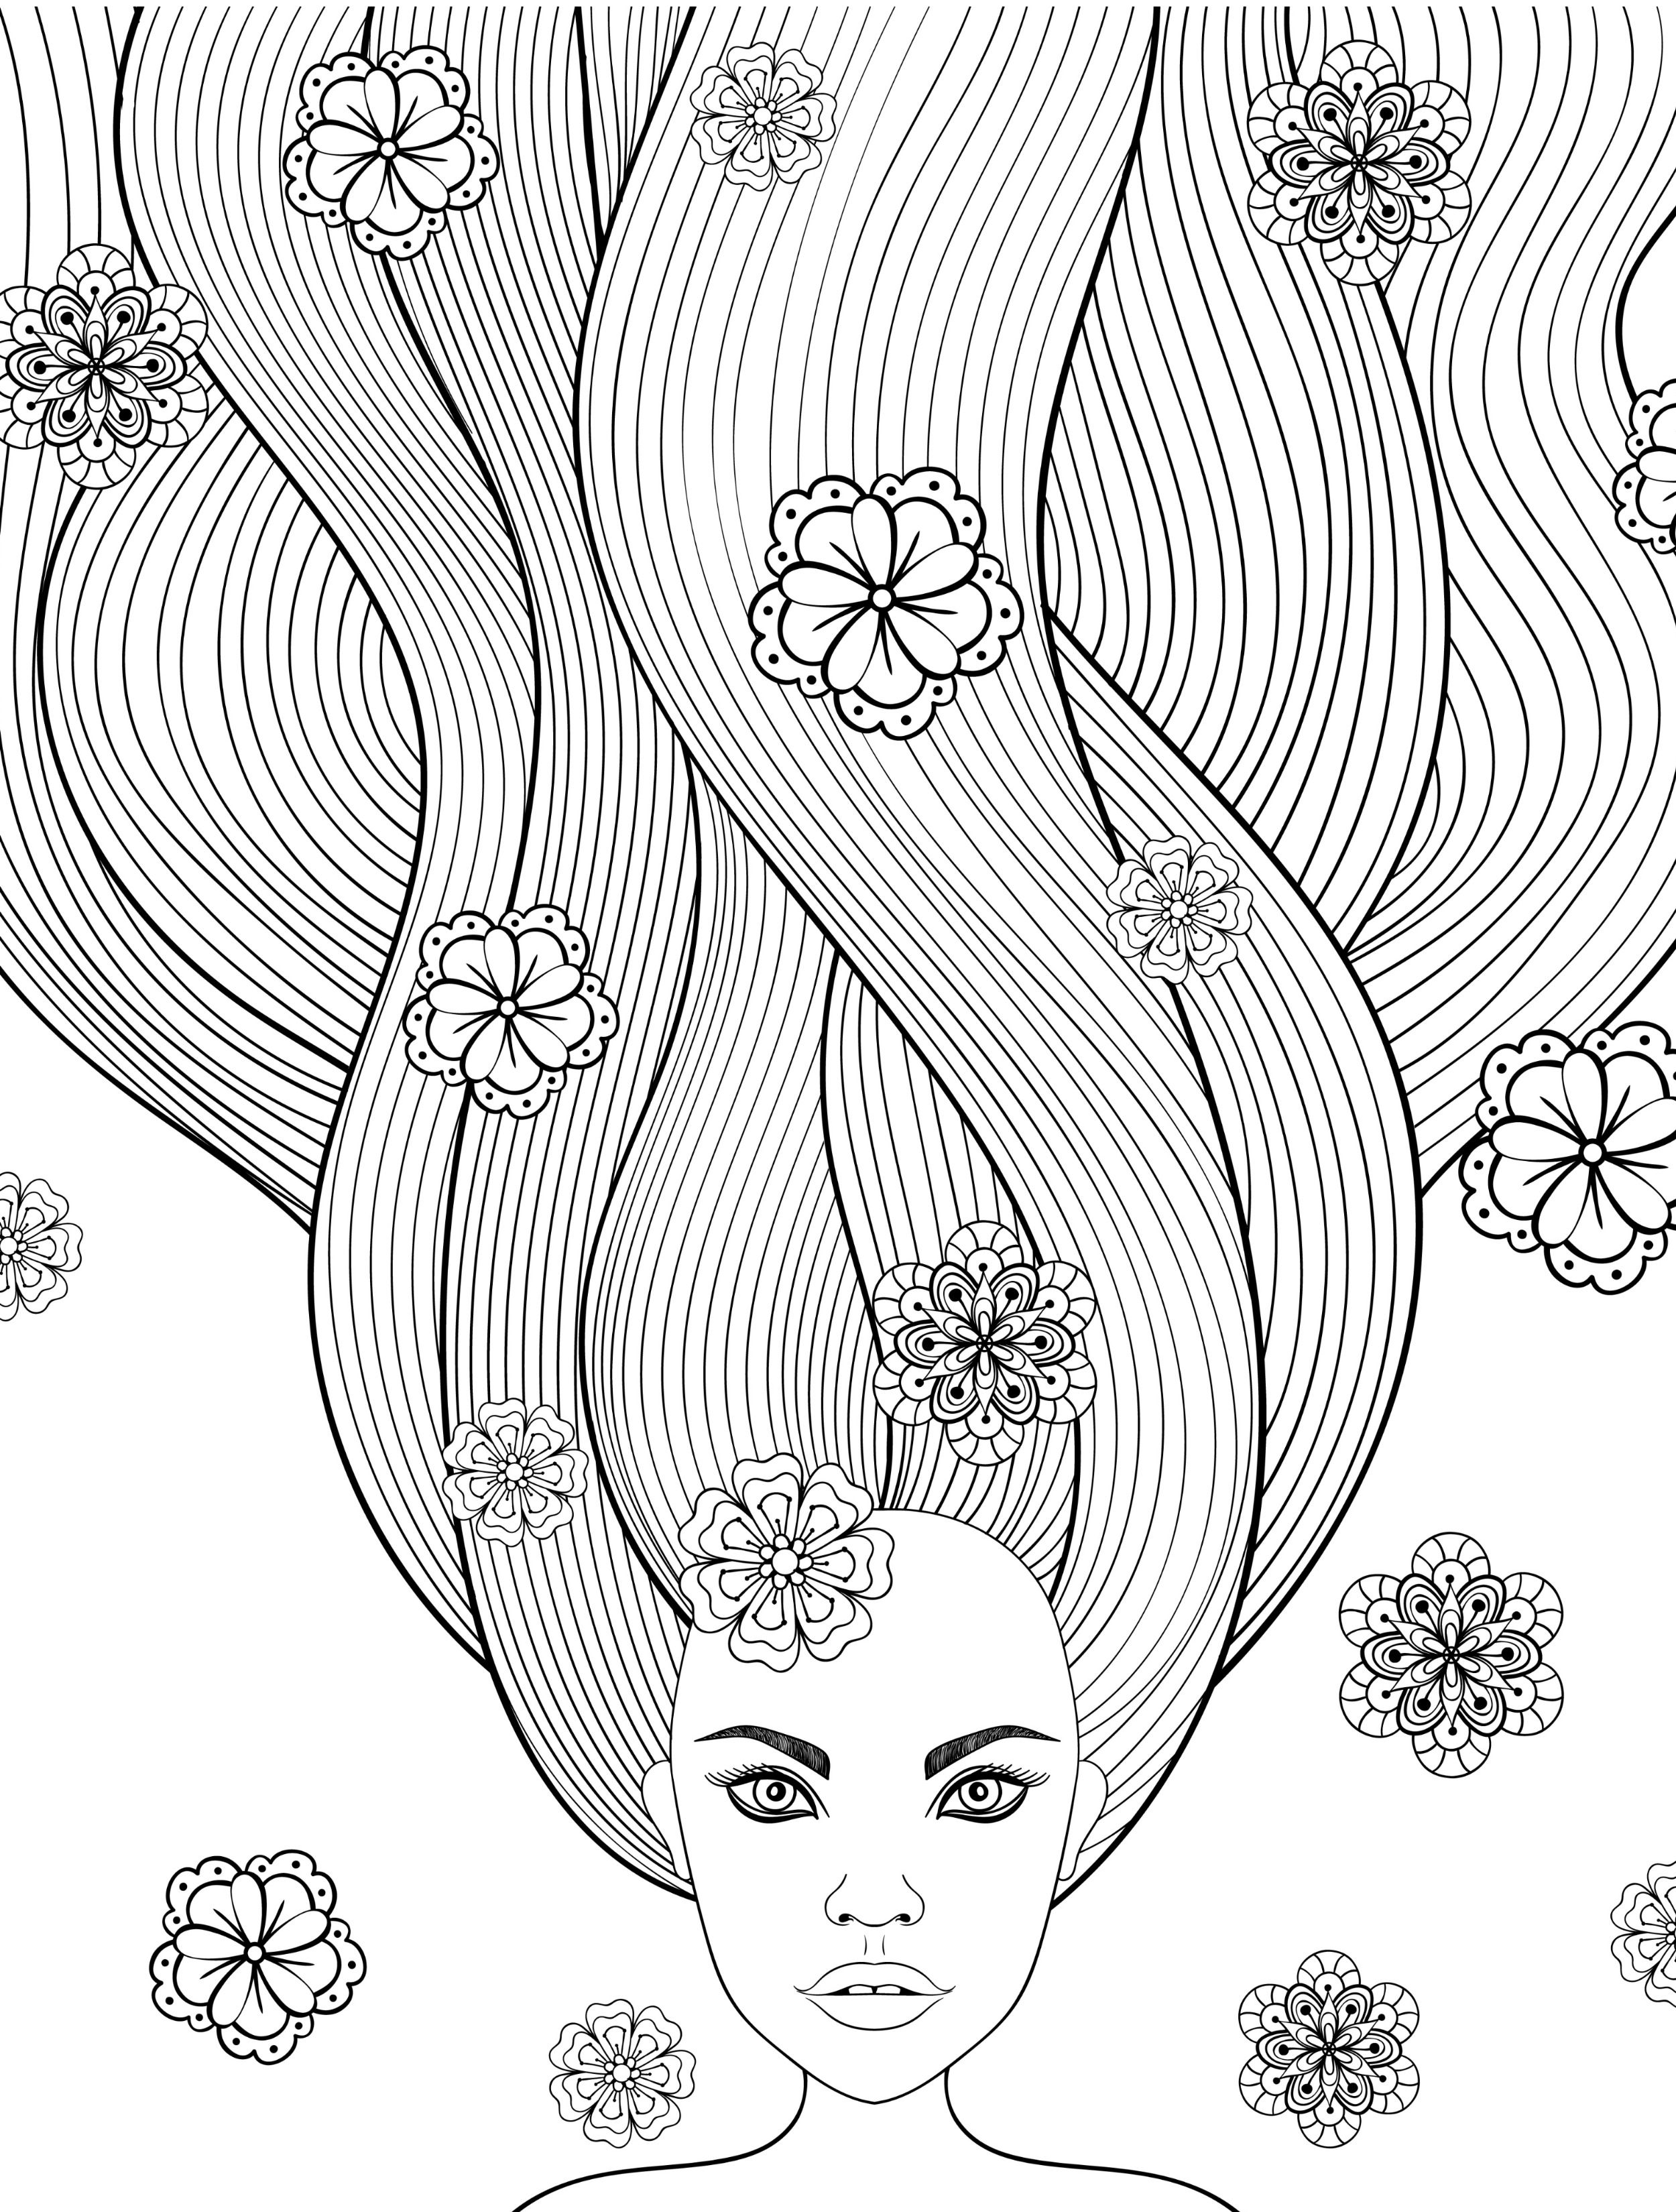 10 crazy hair adult coloring pages page 8 of 12 discover more